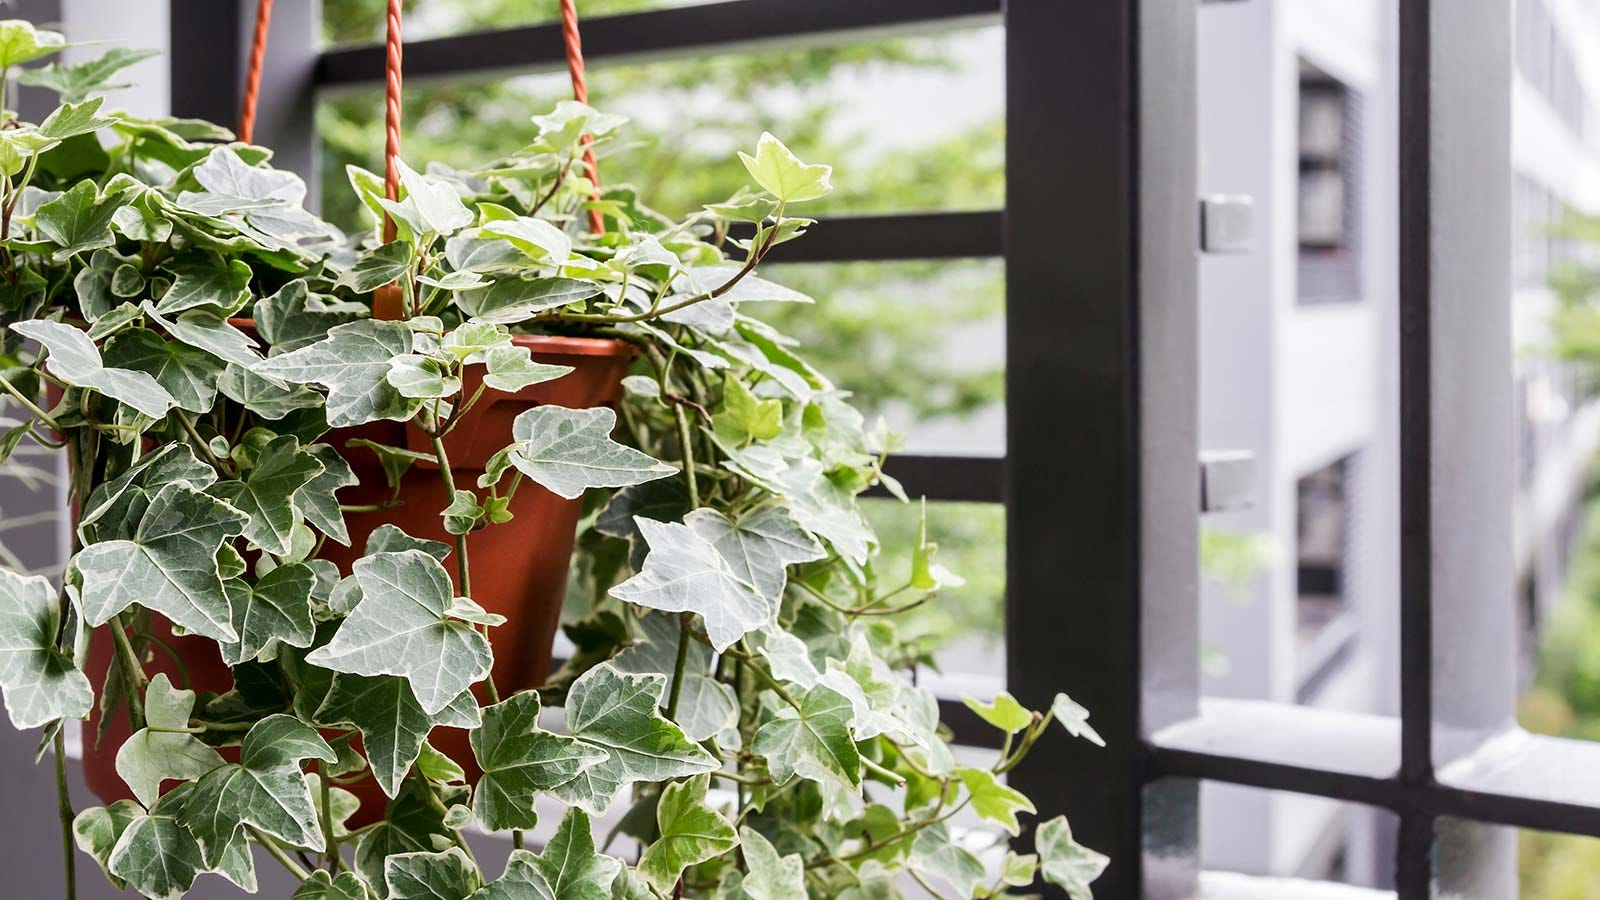 English ivy in a hanging pot.